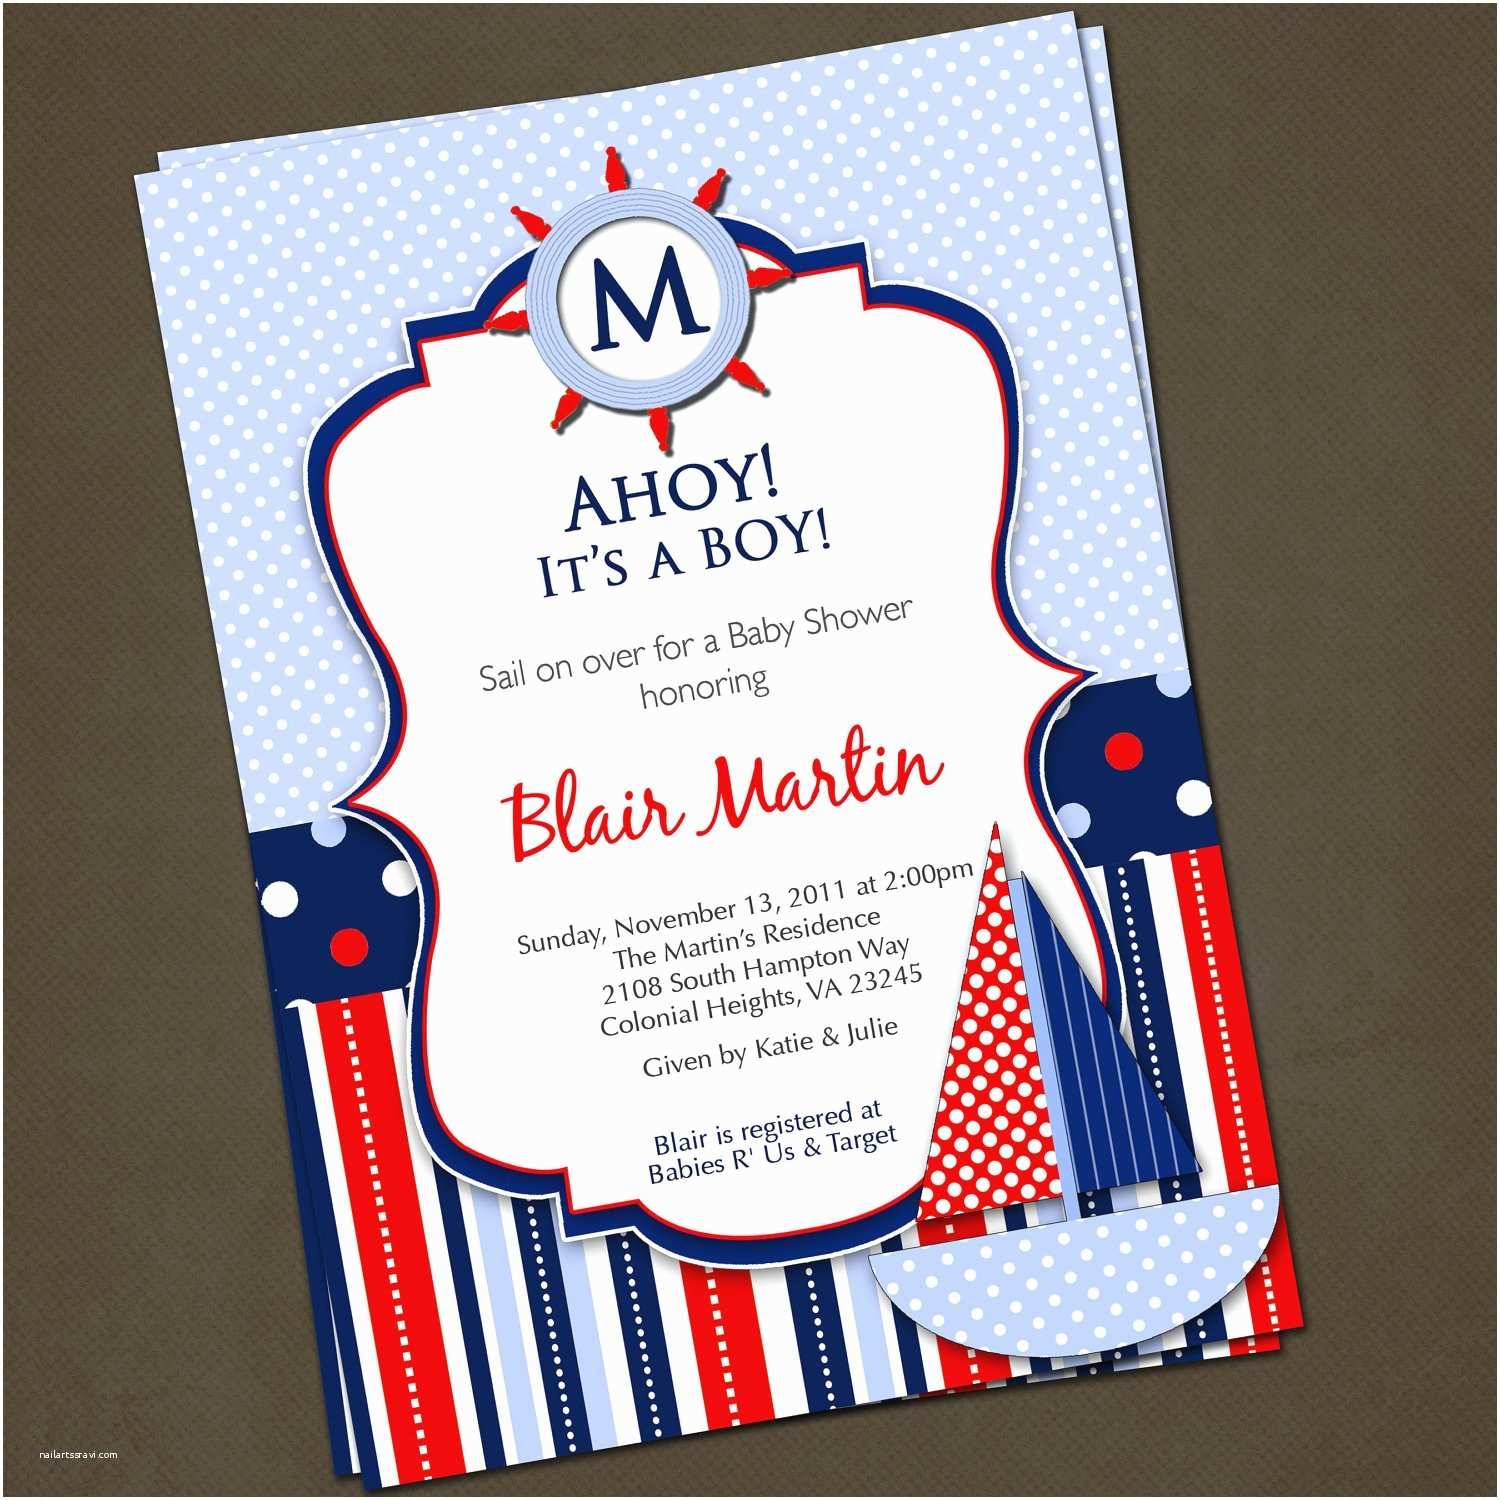 Nautical themed Baby Shower Invitations Baby Shower Nautical theme Invitations